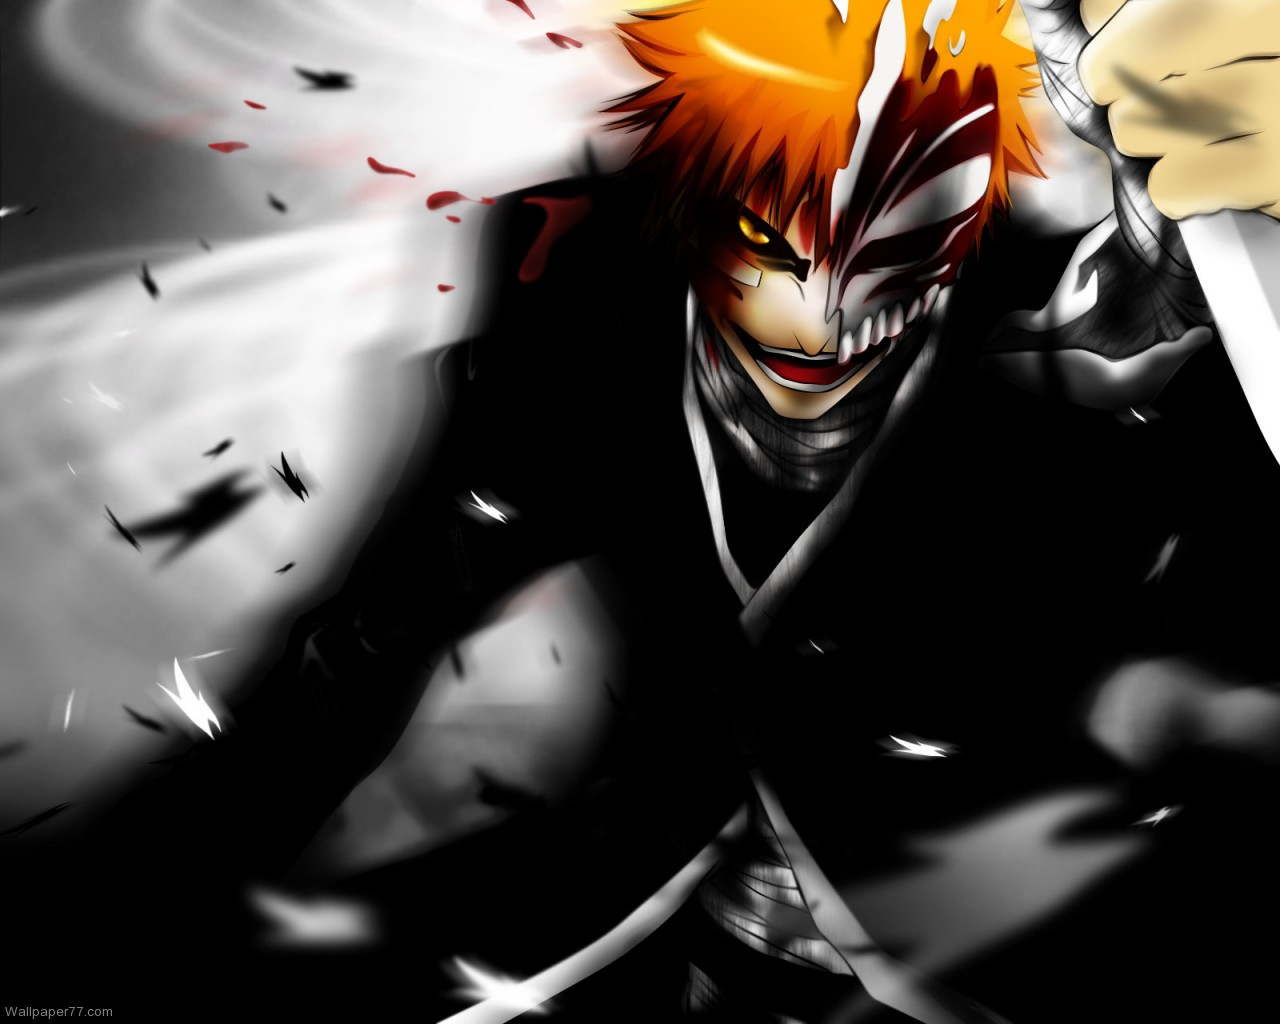 Bleach 1280x1024 pixels Wallpapers tagged Anime Wallpaper Bleach 1280x1024